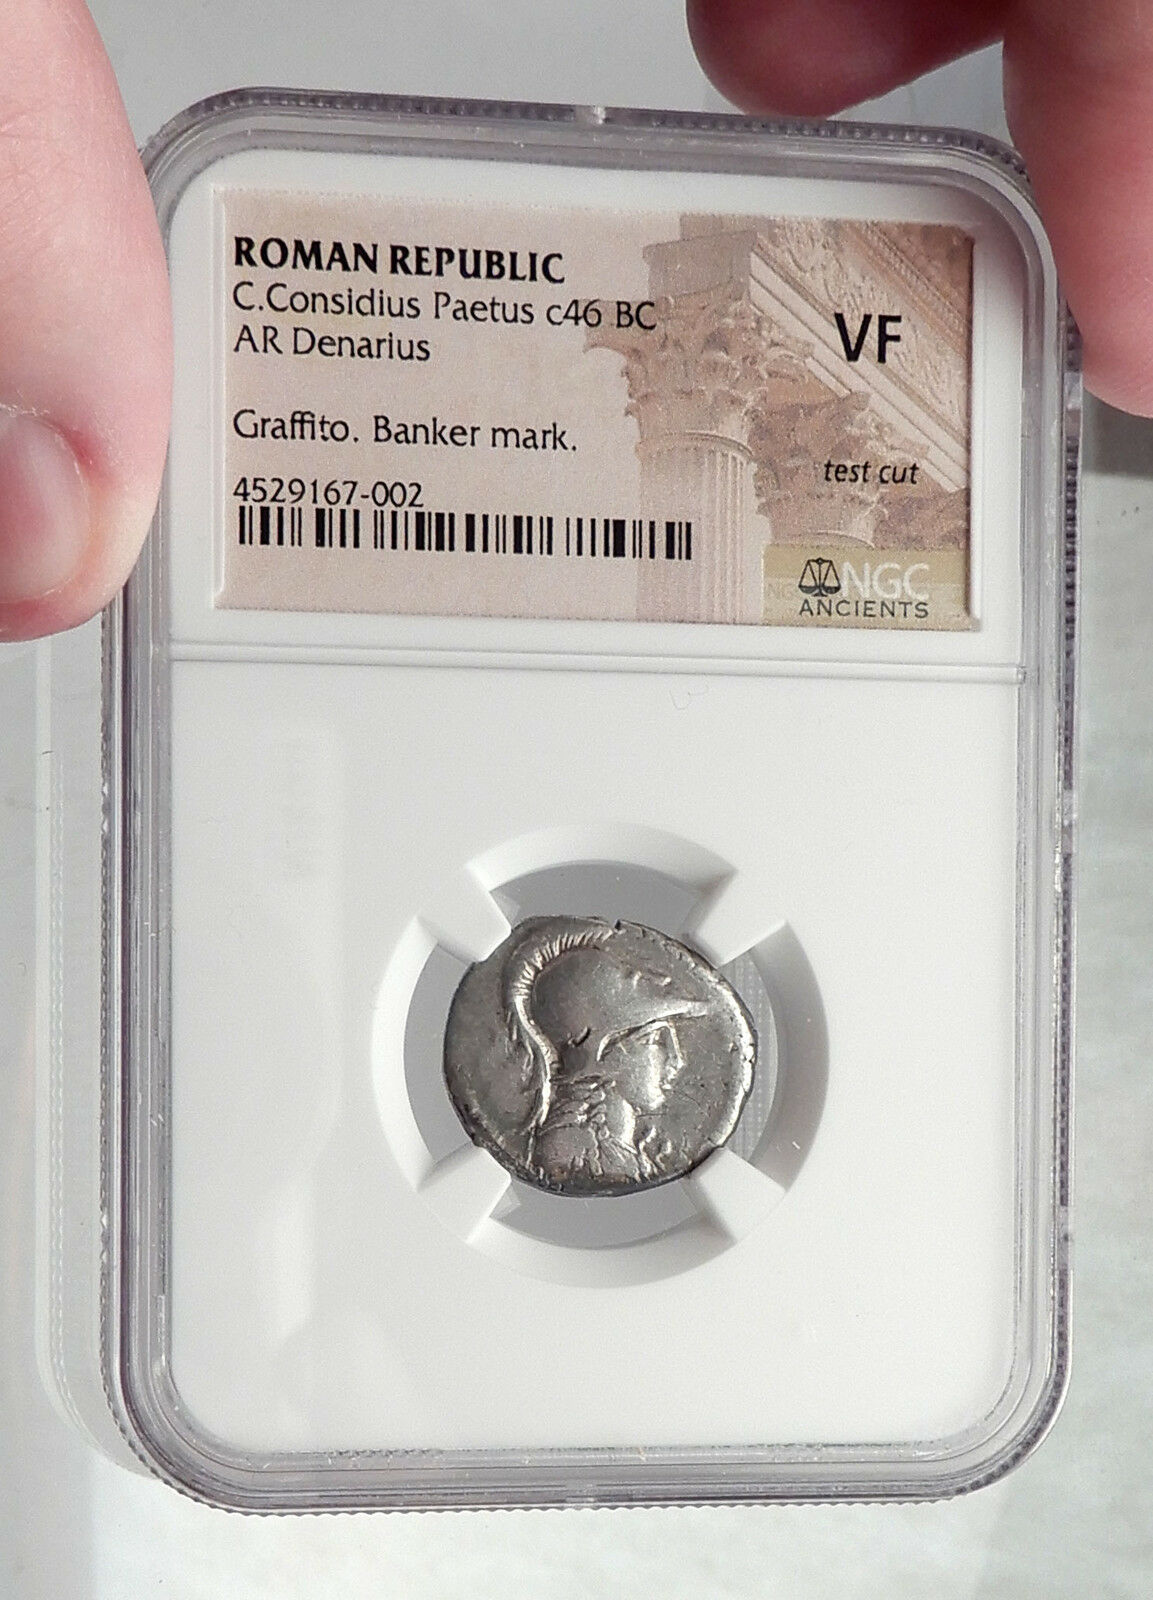 Roman Republic 46BC Authentic Ancient Silver Coin MINERVA VICTORY NGC i61915 3